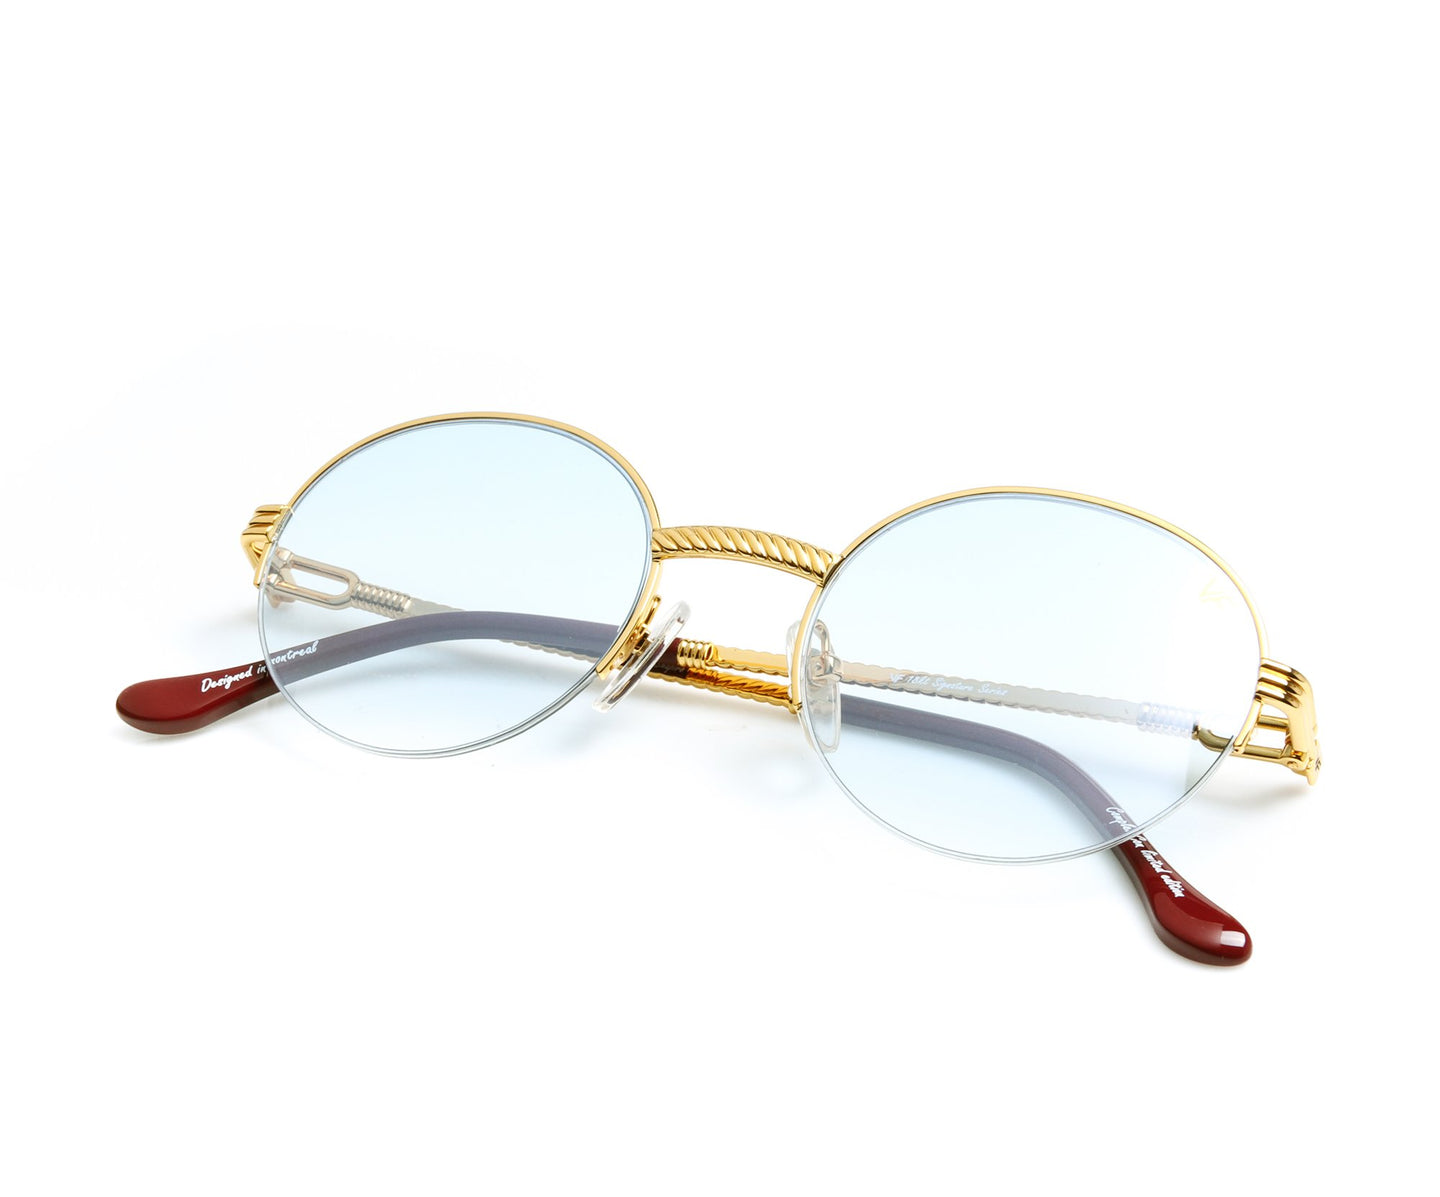 VF 508 Half Rim 18KT Gold (Tiffany Blue) Front, VF Half-Rim , glasses frames, eyeglasses online, eyeglass frames, mens glasses, womens glasses, buy glasses online, designer eyeglasses, vintage sunglasses, retro sunglasses, vintage glasses, sunglass, eyeglass, glasses, lens, vintage frames company, vf